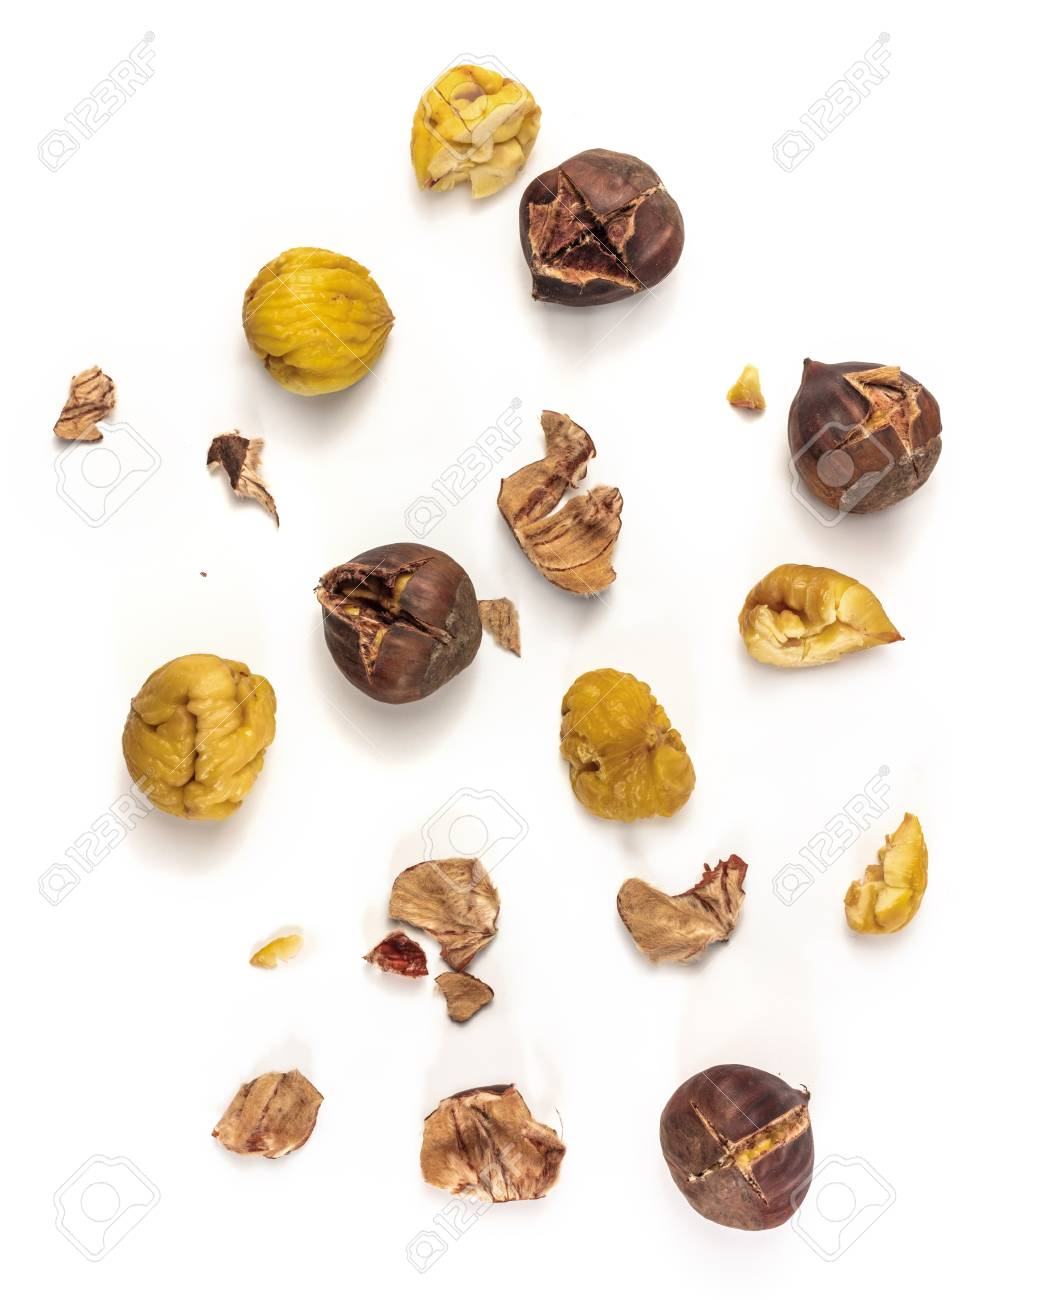 A photo of peeled and unpeeled roasted chestnuts, shot from above on white background - 68334537